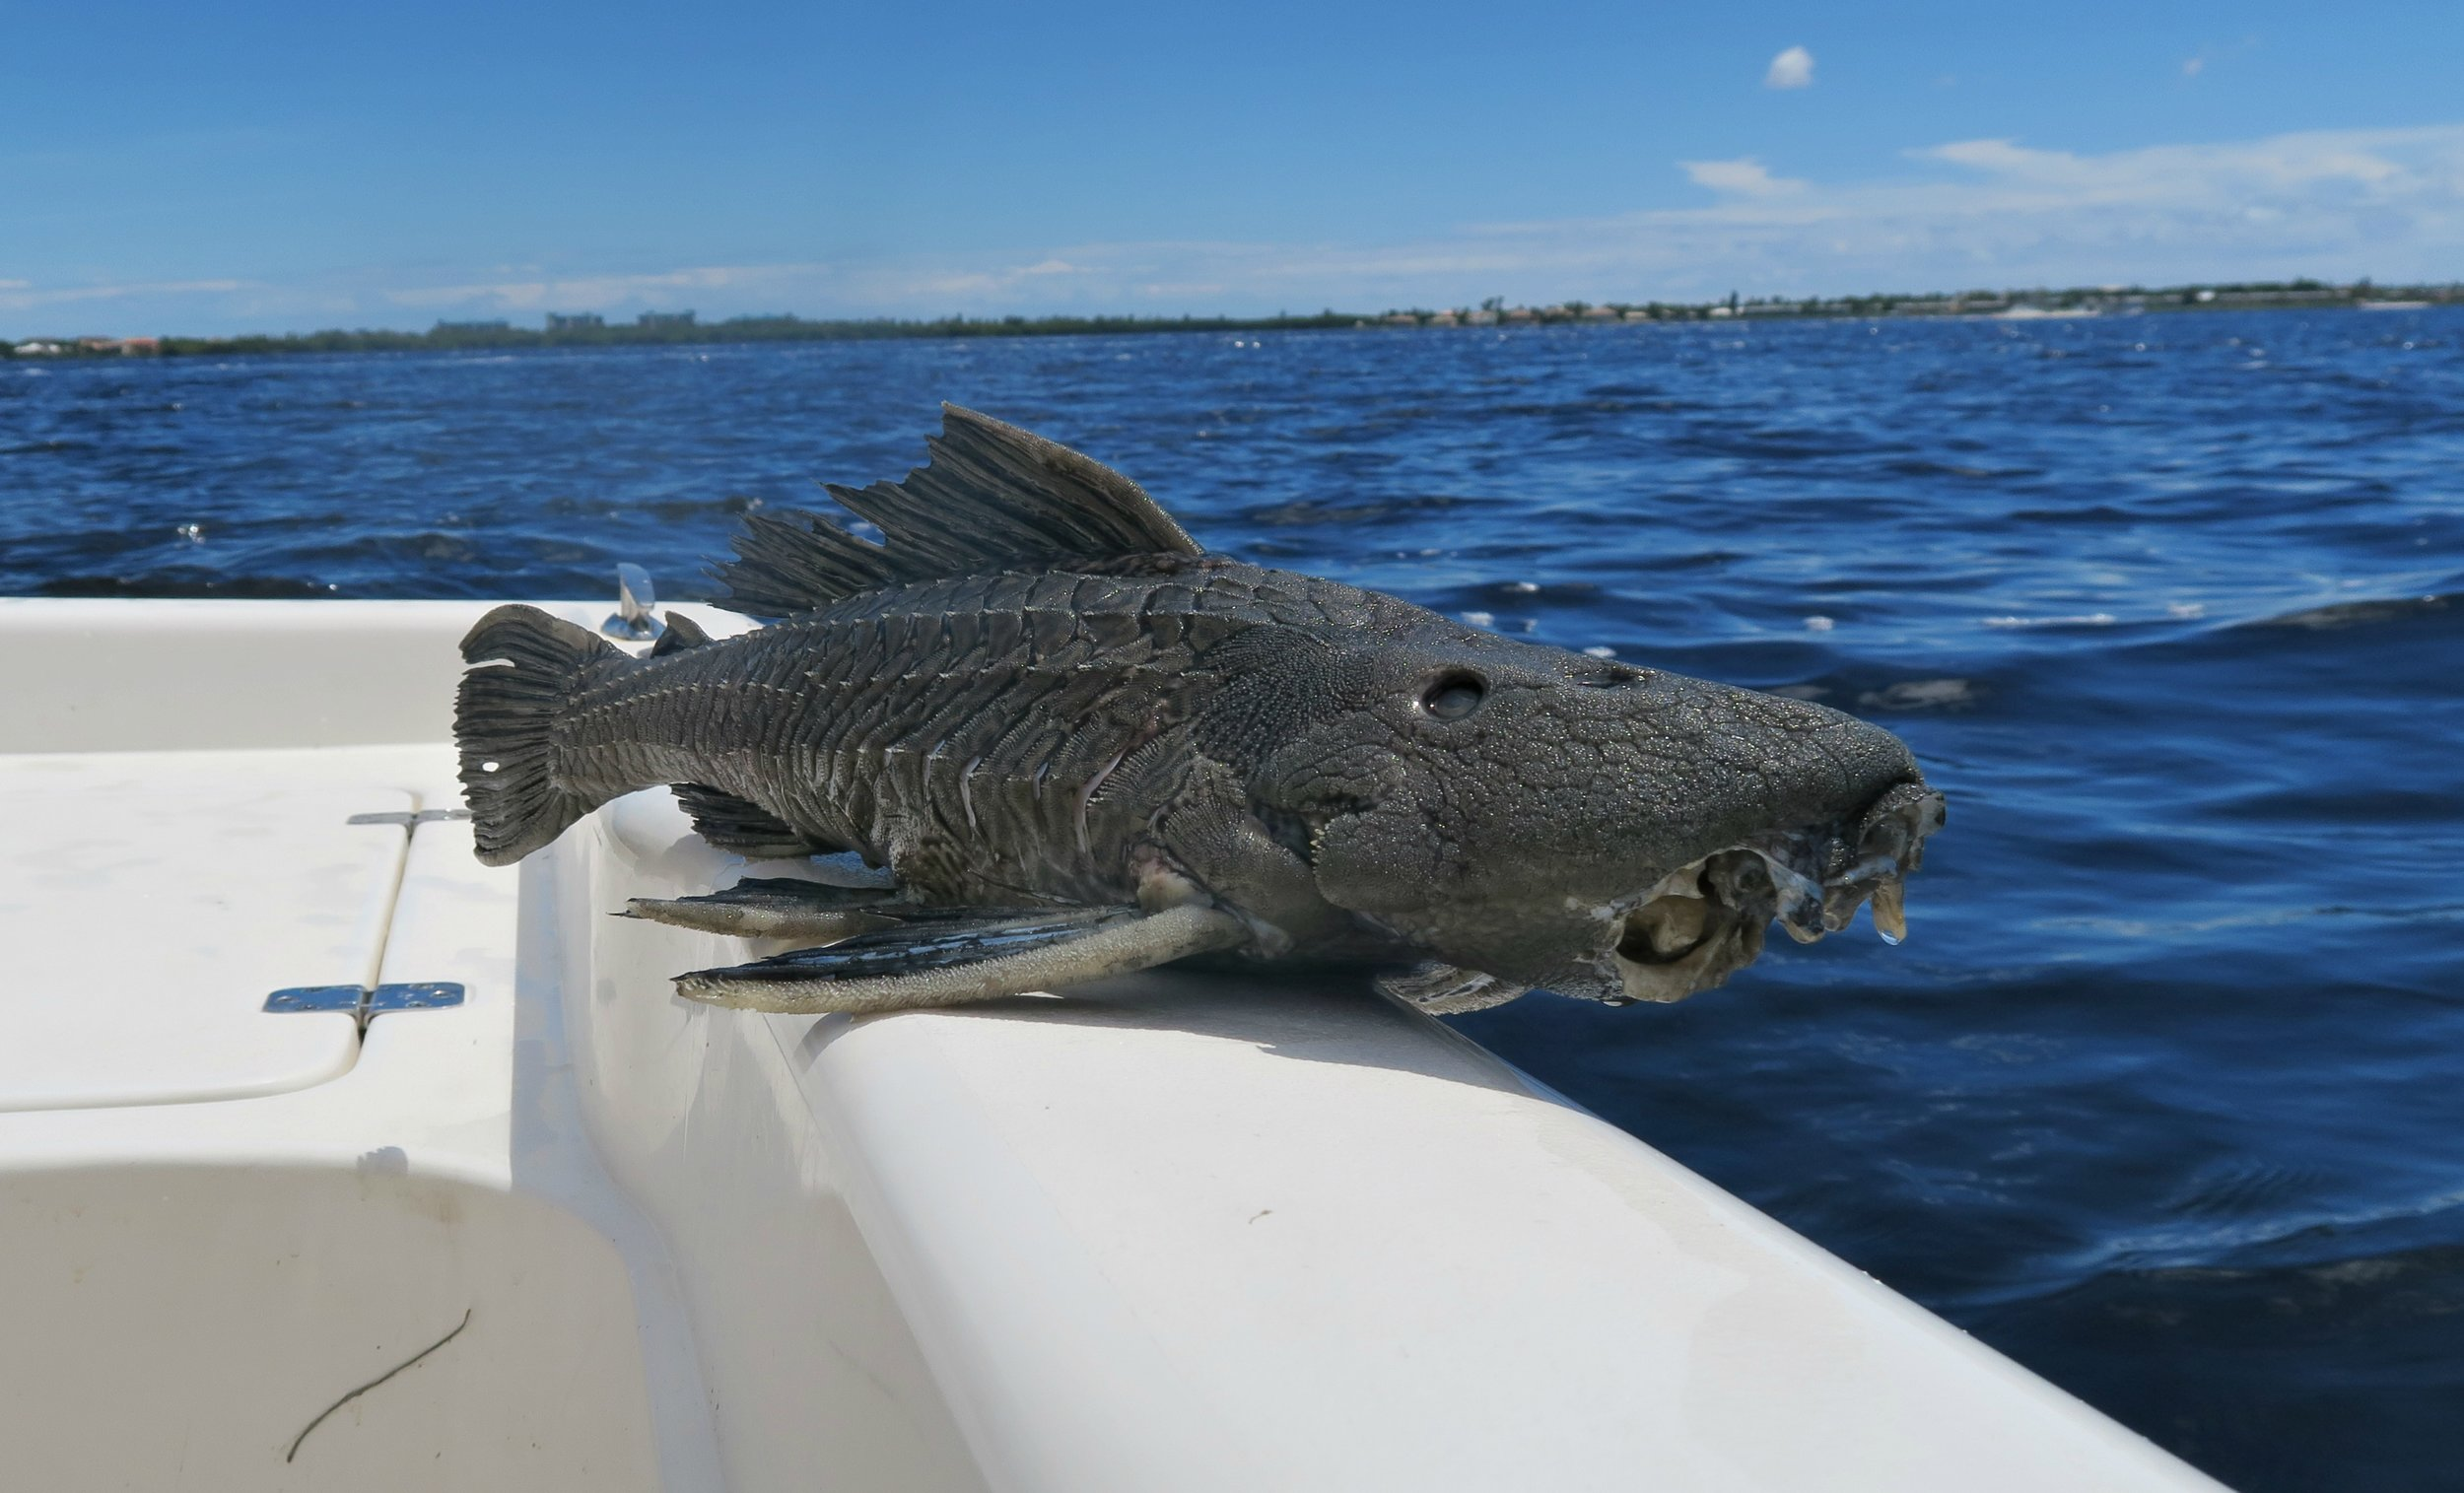 a dead plecostomus in the caloosahatchee RIVER